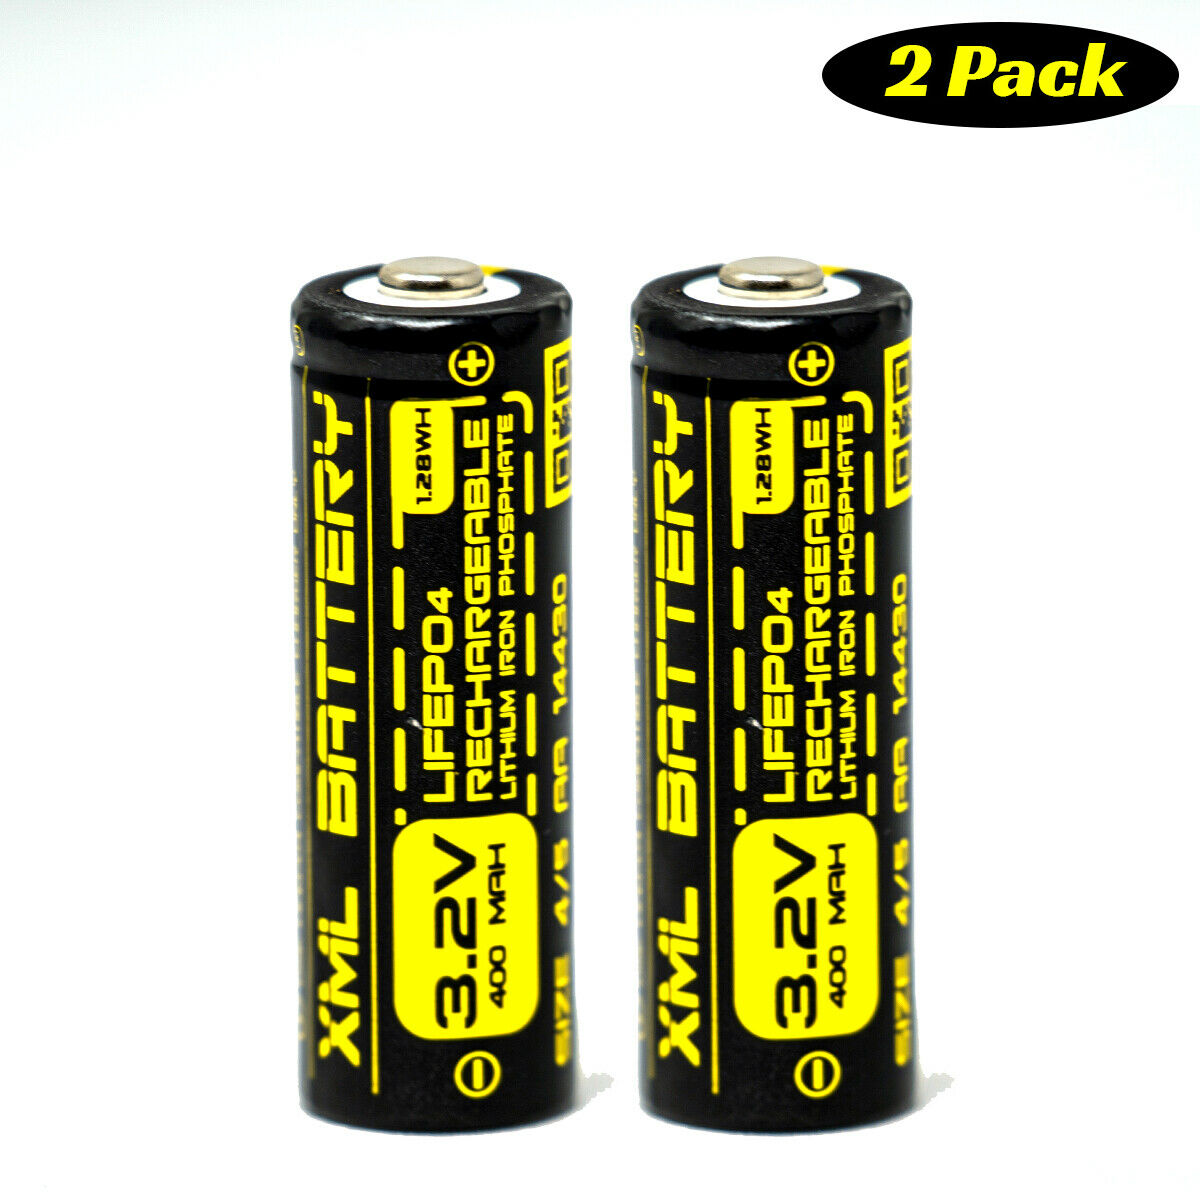 (2 Pack) IFR 14430P LIFEPo4 Battery 3.2v 400mAh For Solar Outdoor and others